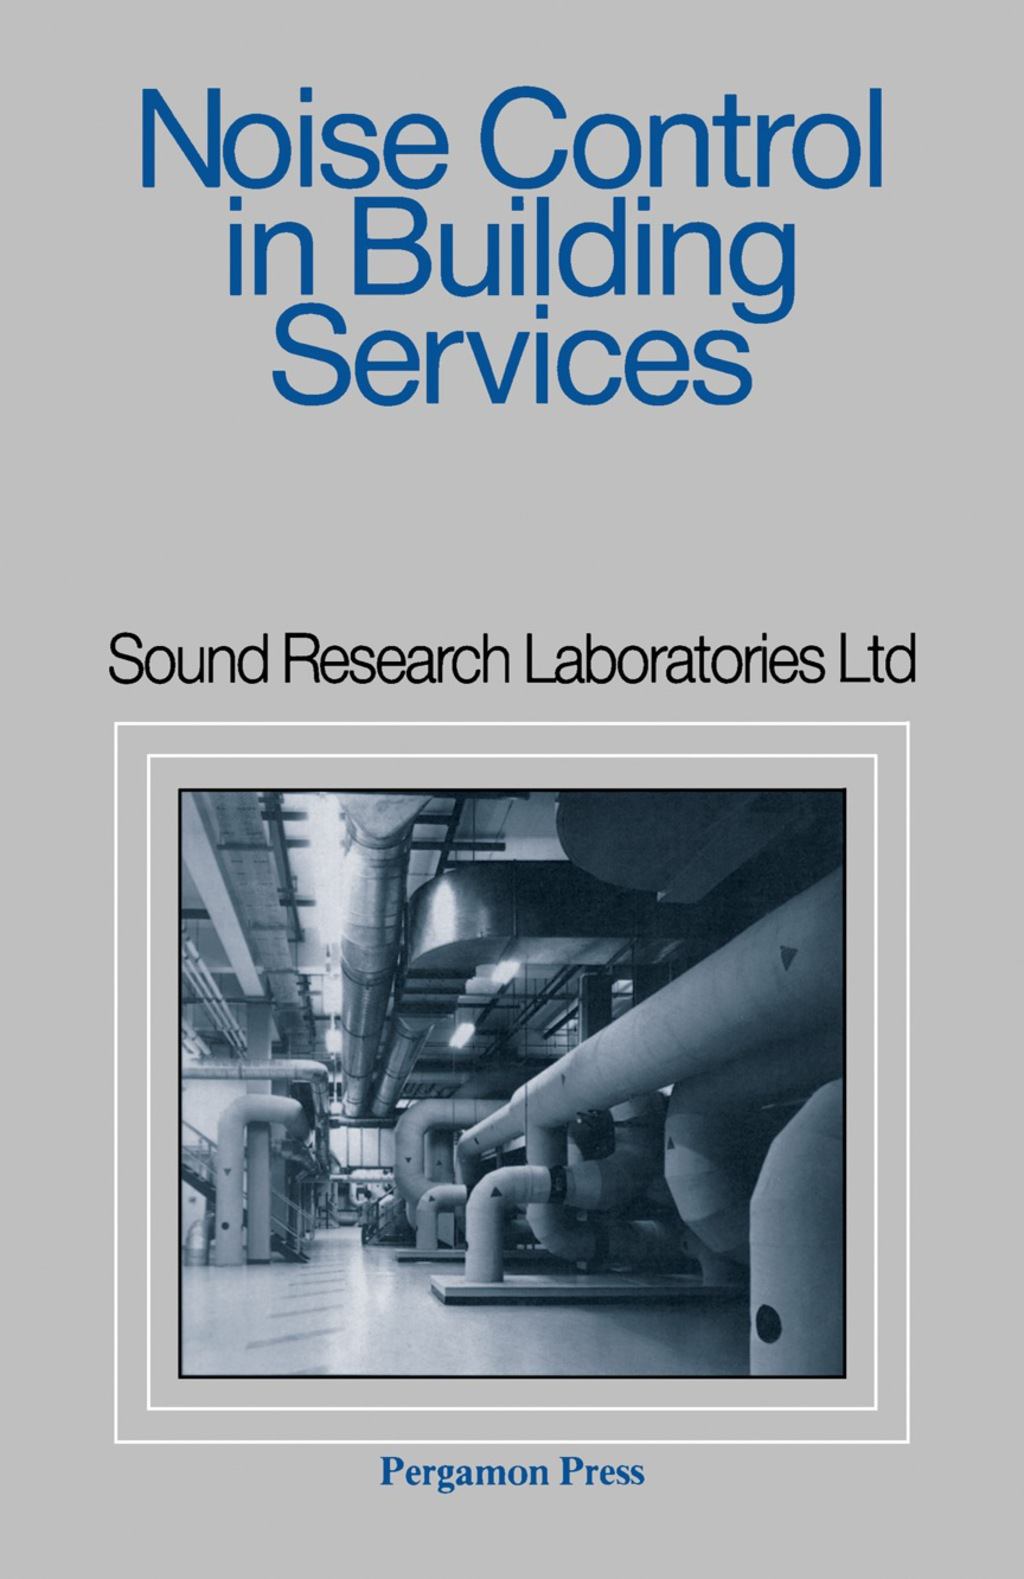 Noise Control in Building Services (ebook) eBooks